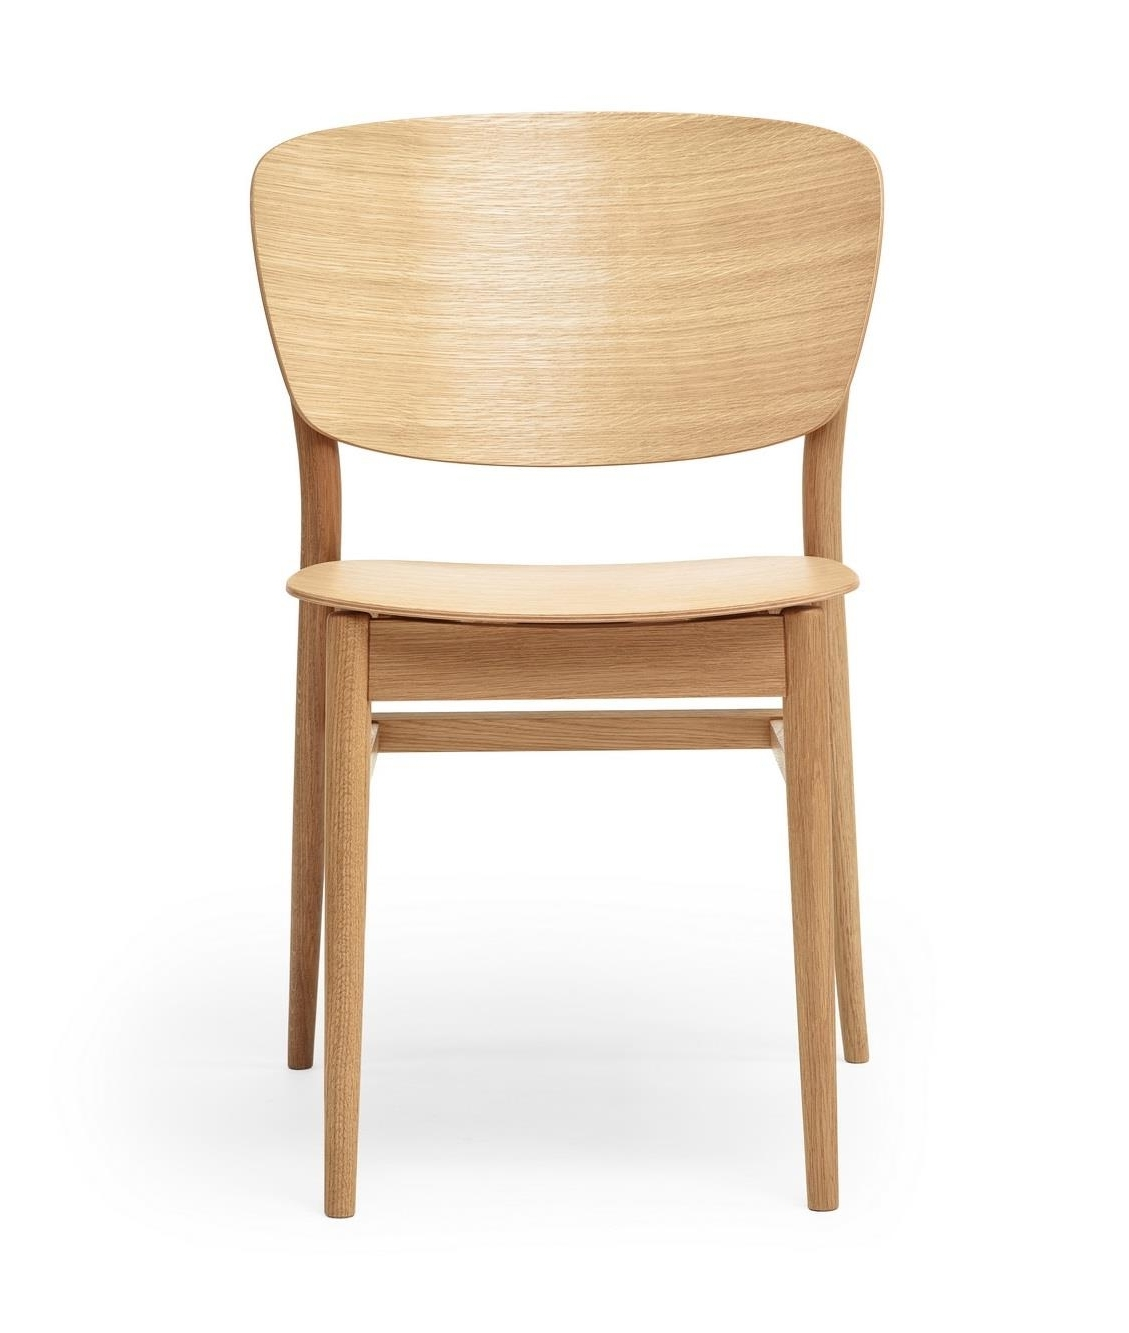 Fashionable Valencia Side Chair, Wooden – Telegraph Contract Furniture For Valencia Side Chairs With Upholstered Seat (View 6 of 20)